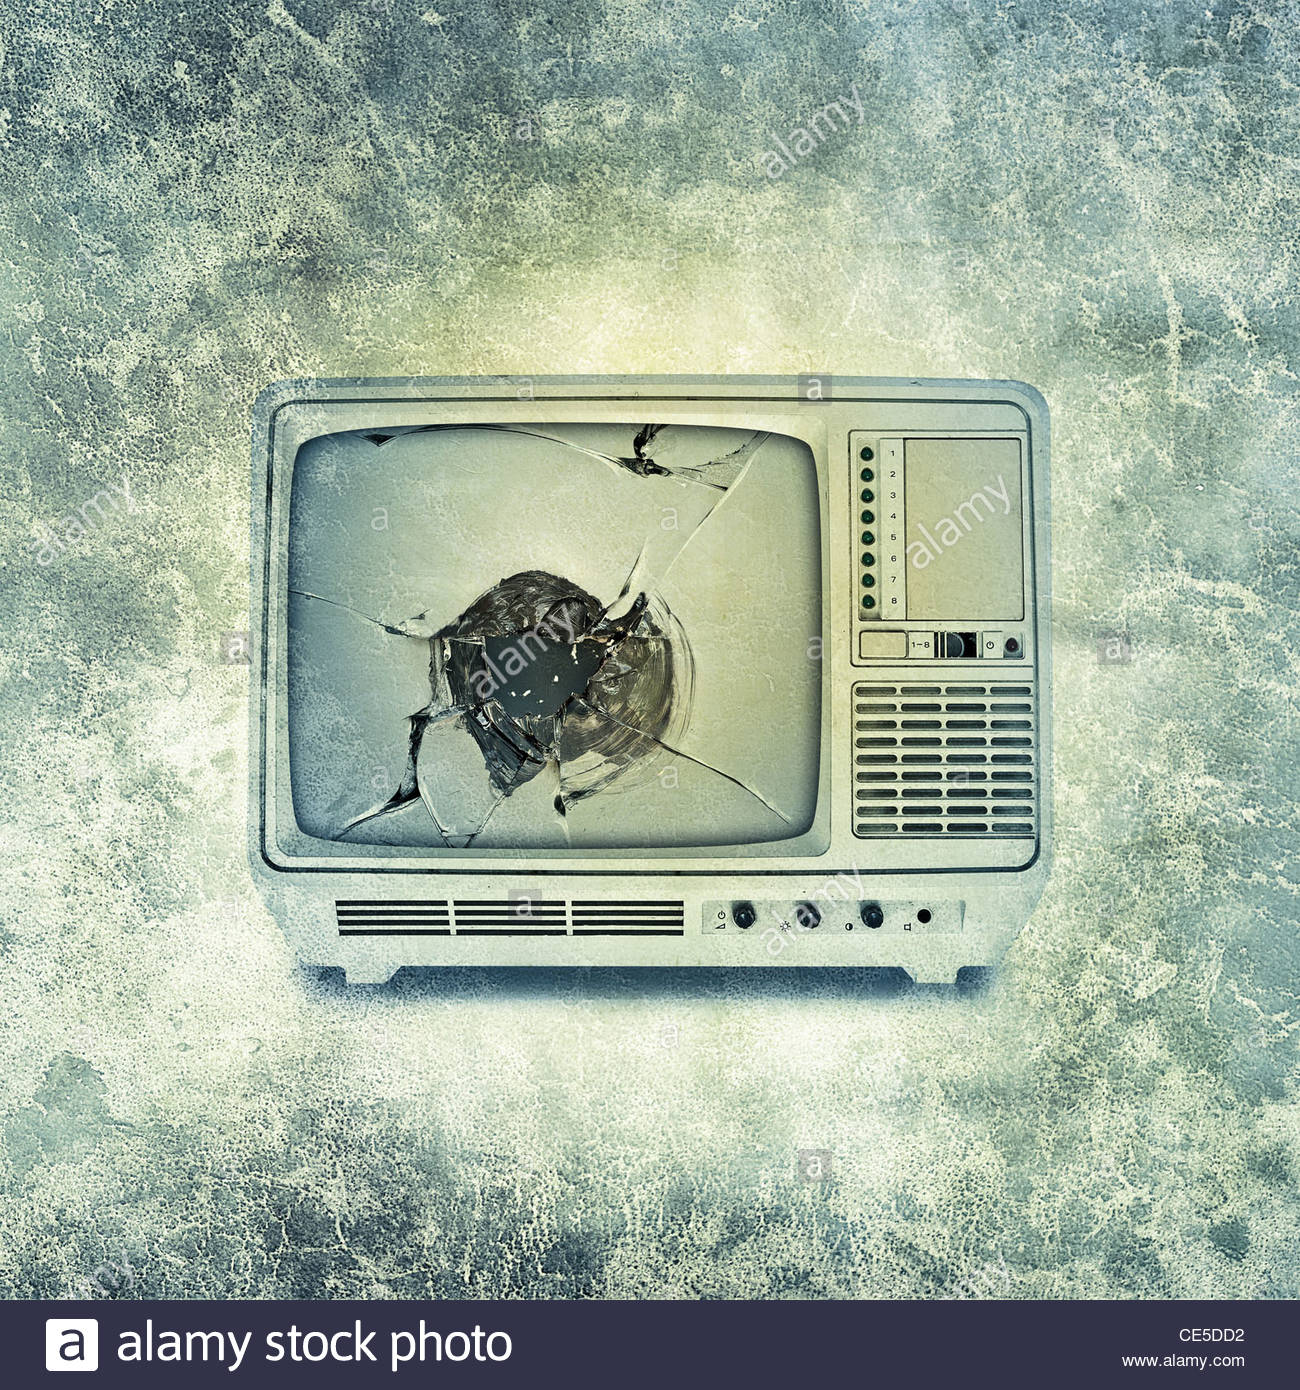 Old fashioned portable television set - Stock Image